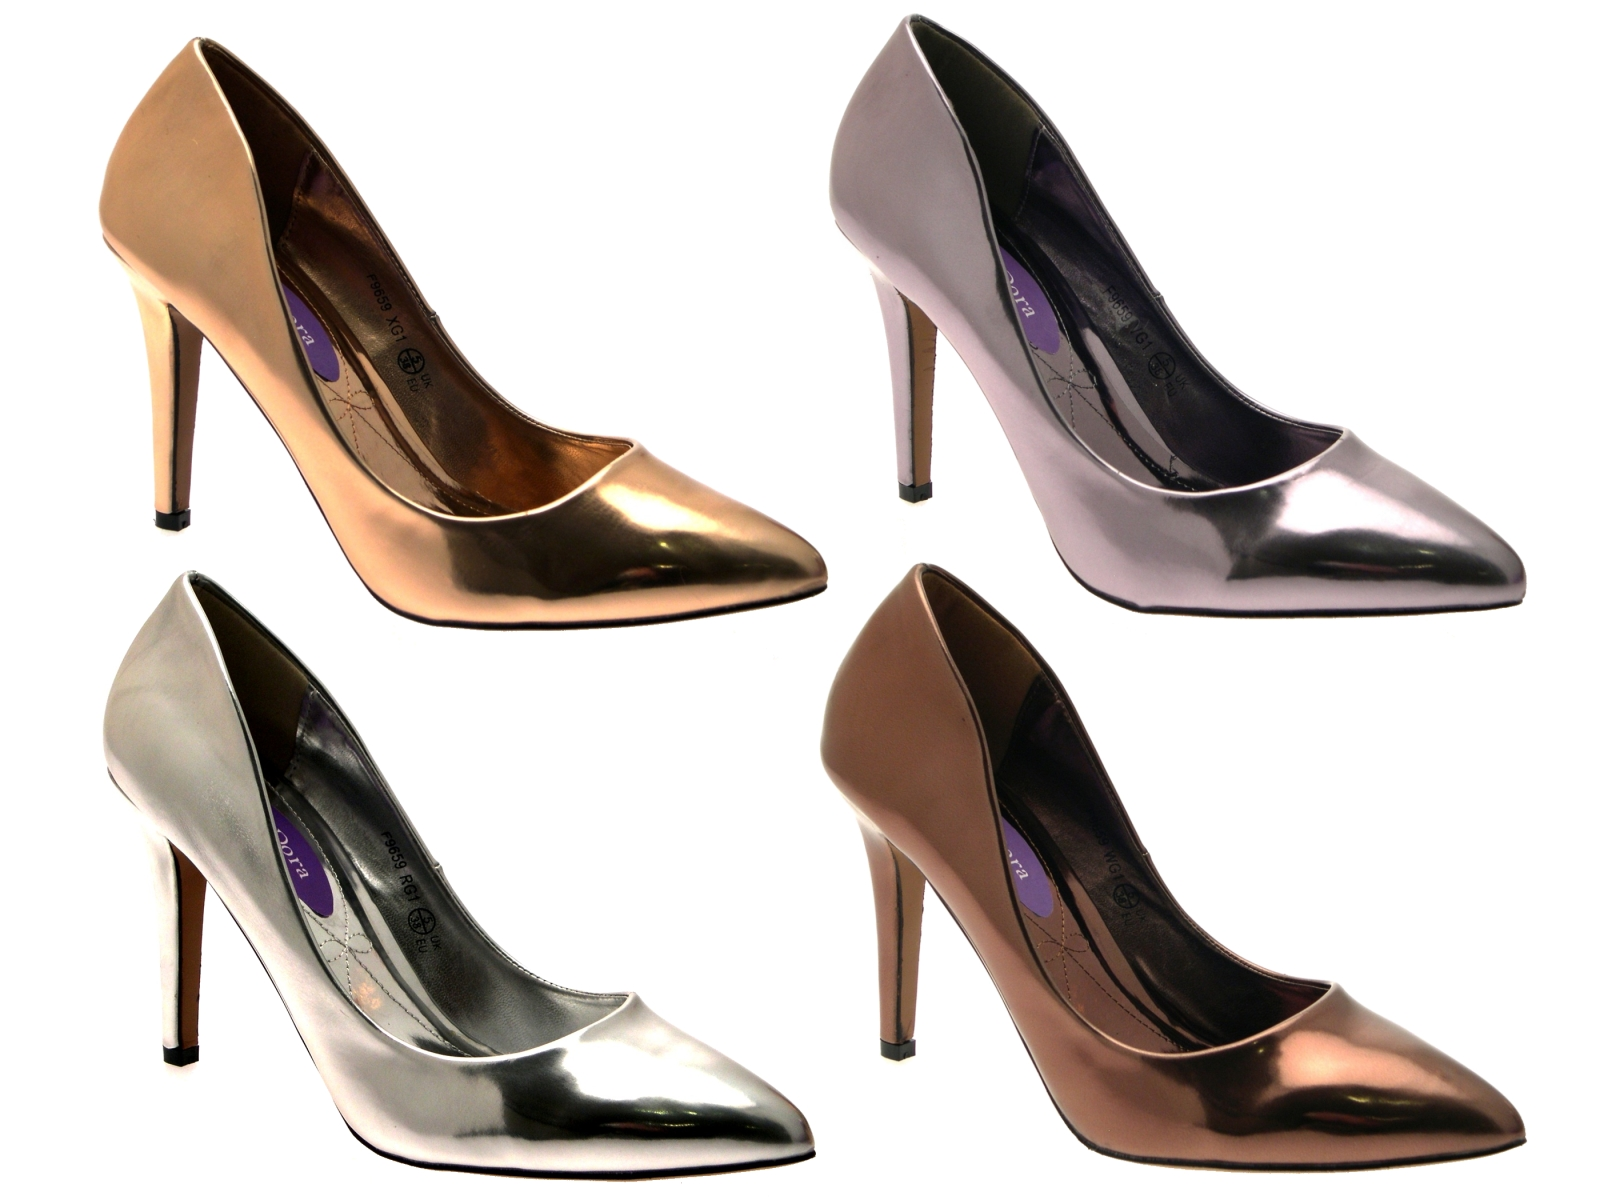 Womens-Metallic-Pointed-Toe-Court-Stiletto-High-Heels-Ladies-Work-Office-Shoes thumbnail 7